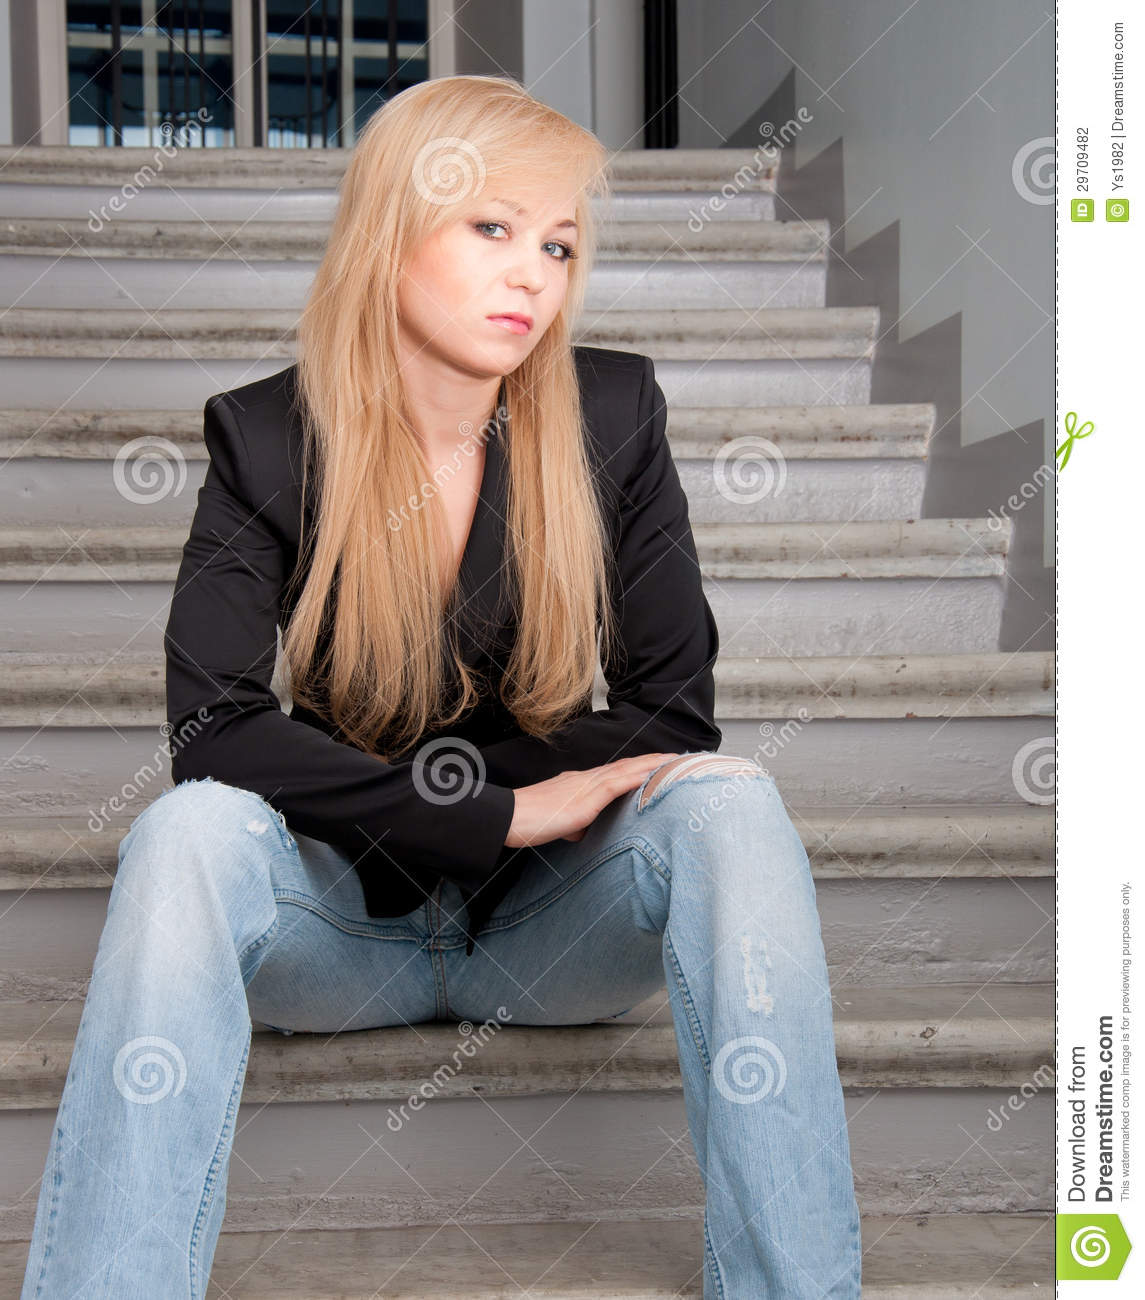 Woman Wearing Blue Jeans Sitting On A Stairs Stock Photography ...